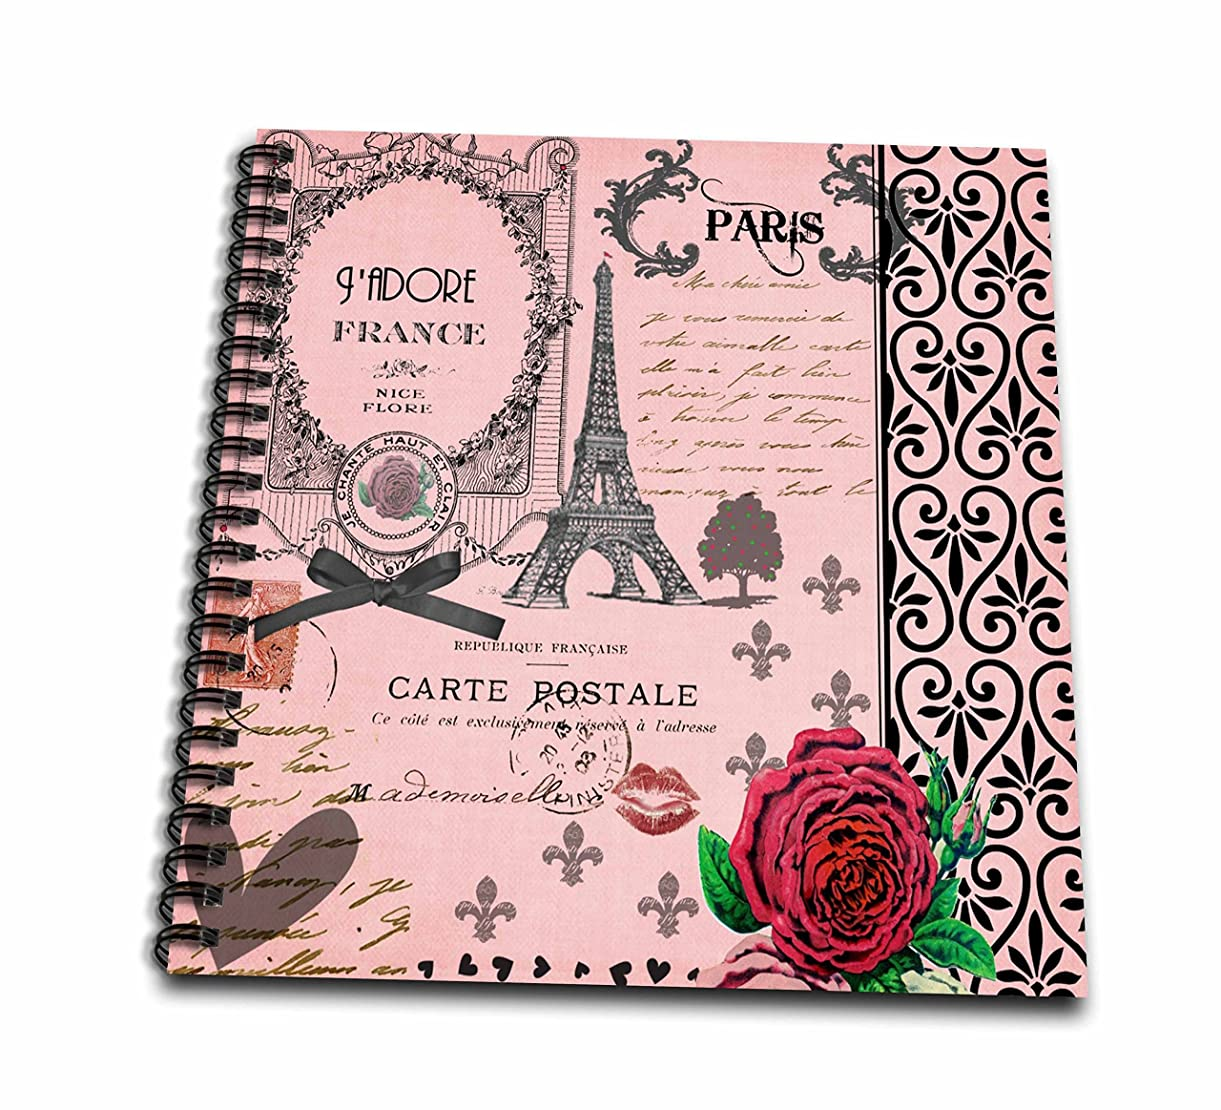 3dRose db_76593_1 Stylish Vintage Pink Paris Collage Art Eiffel Tower Red Rose Girly Gothic Black Bow and Swirls Drawing Book, 8 by 8-Inch xqzvo0544